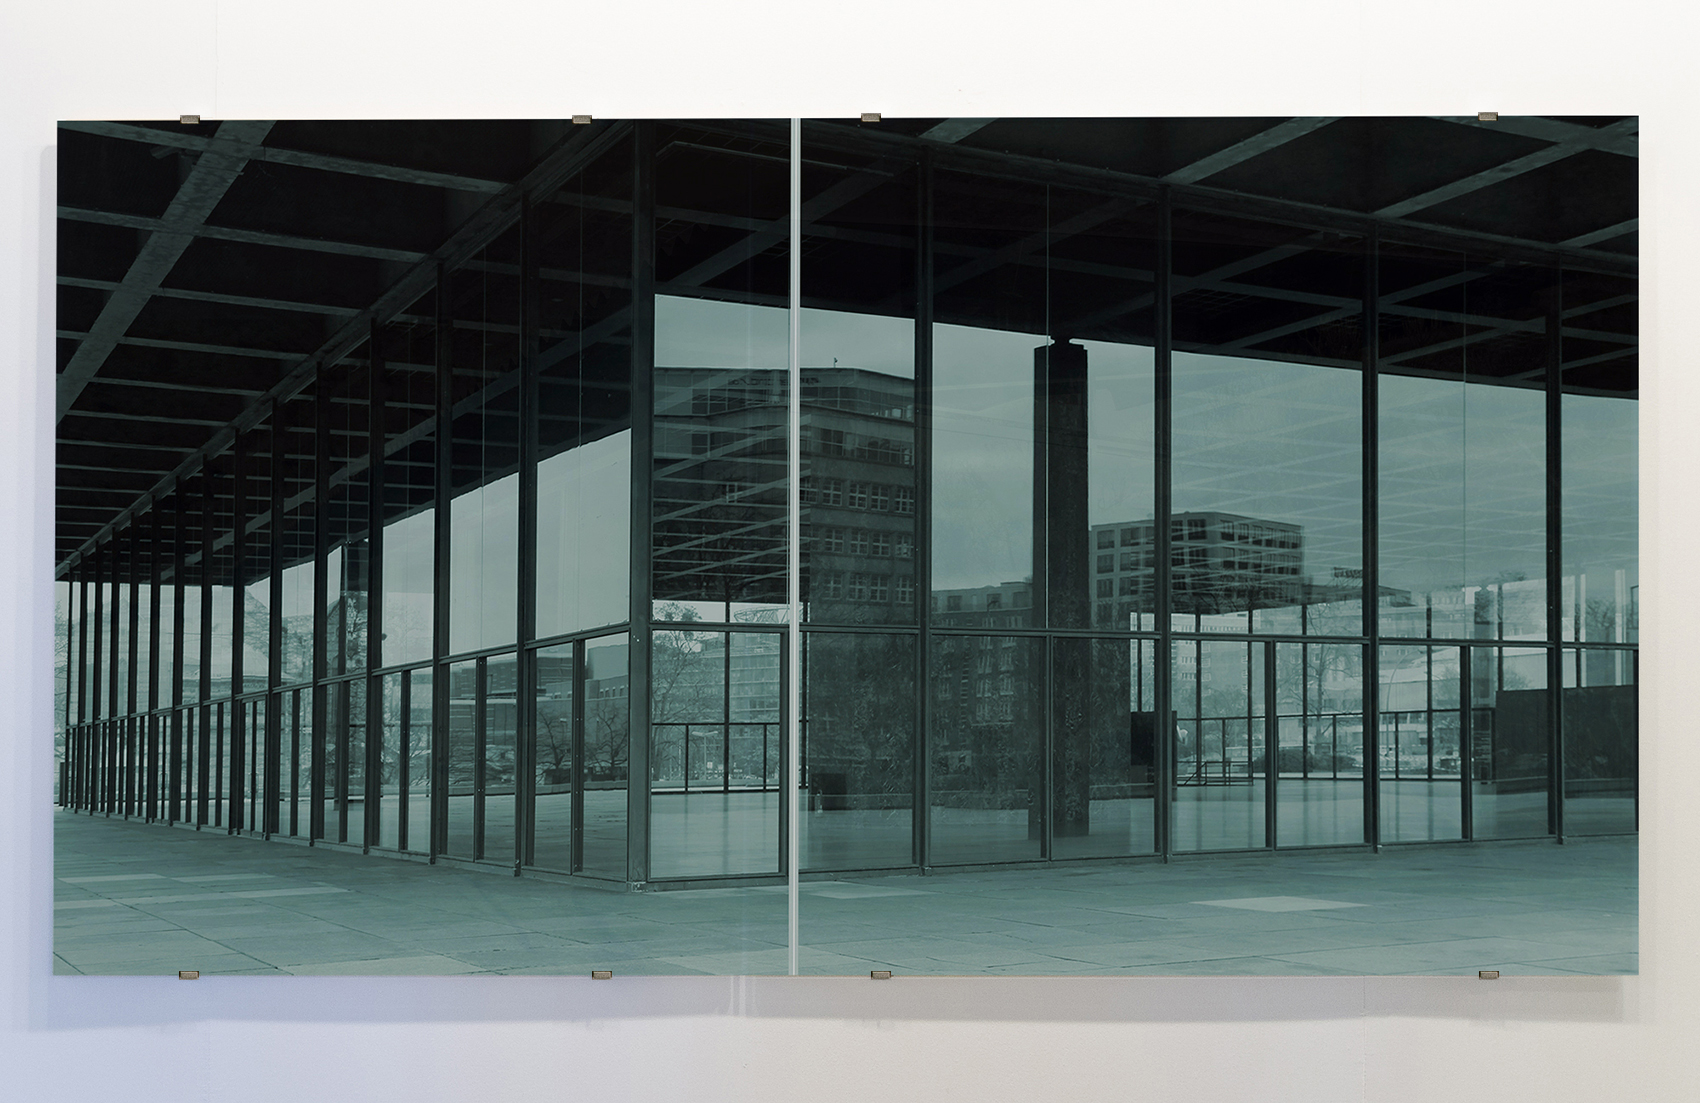 National Gallery , 2018 2-panel silkscreen print on glass overall dimensions:  59 x 114-1/8 inches, 150 x 290 cm Edition of 5